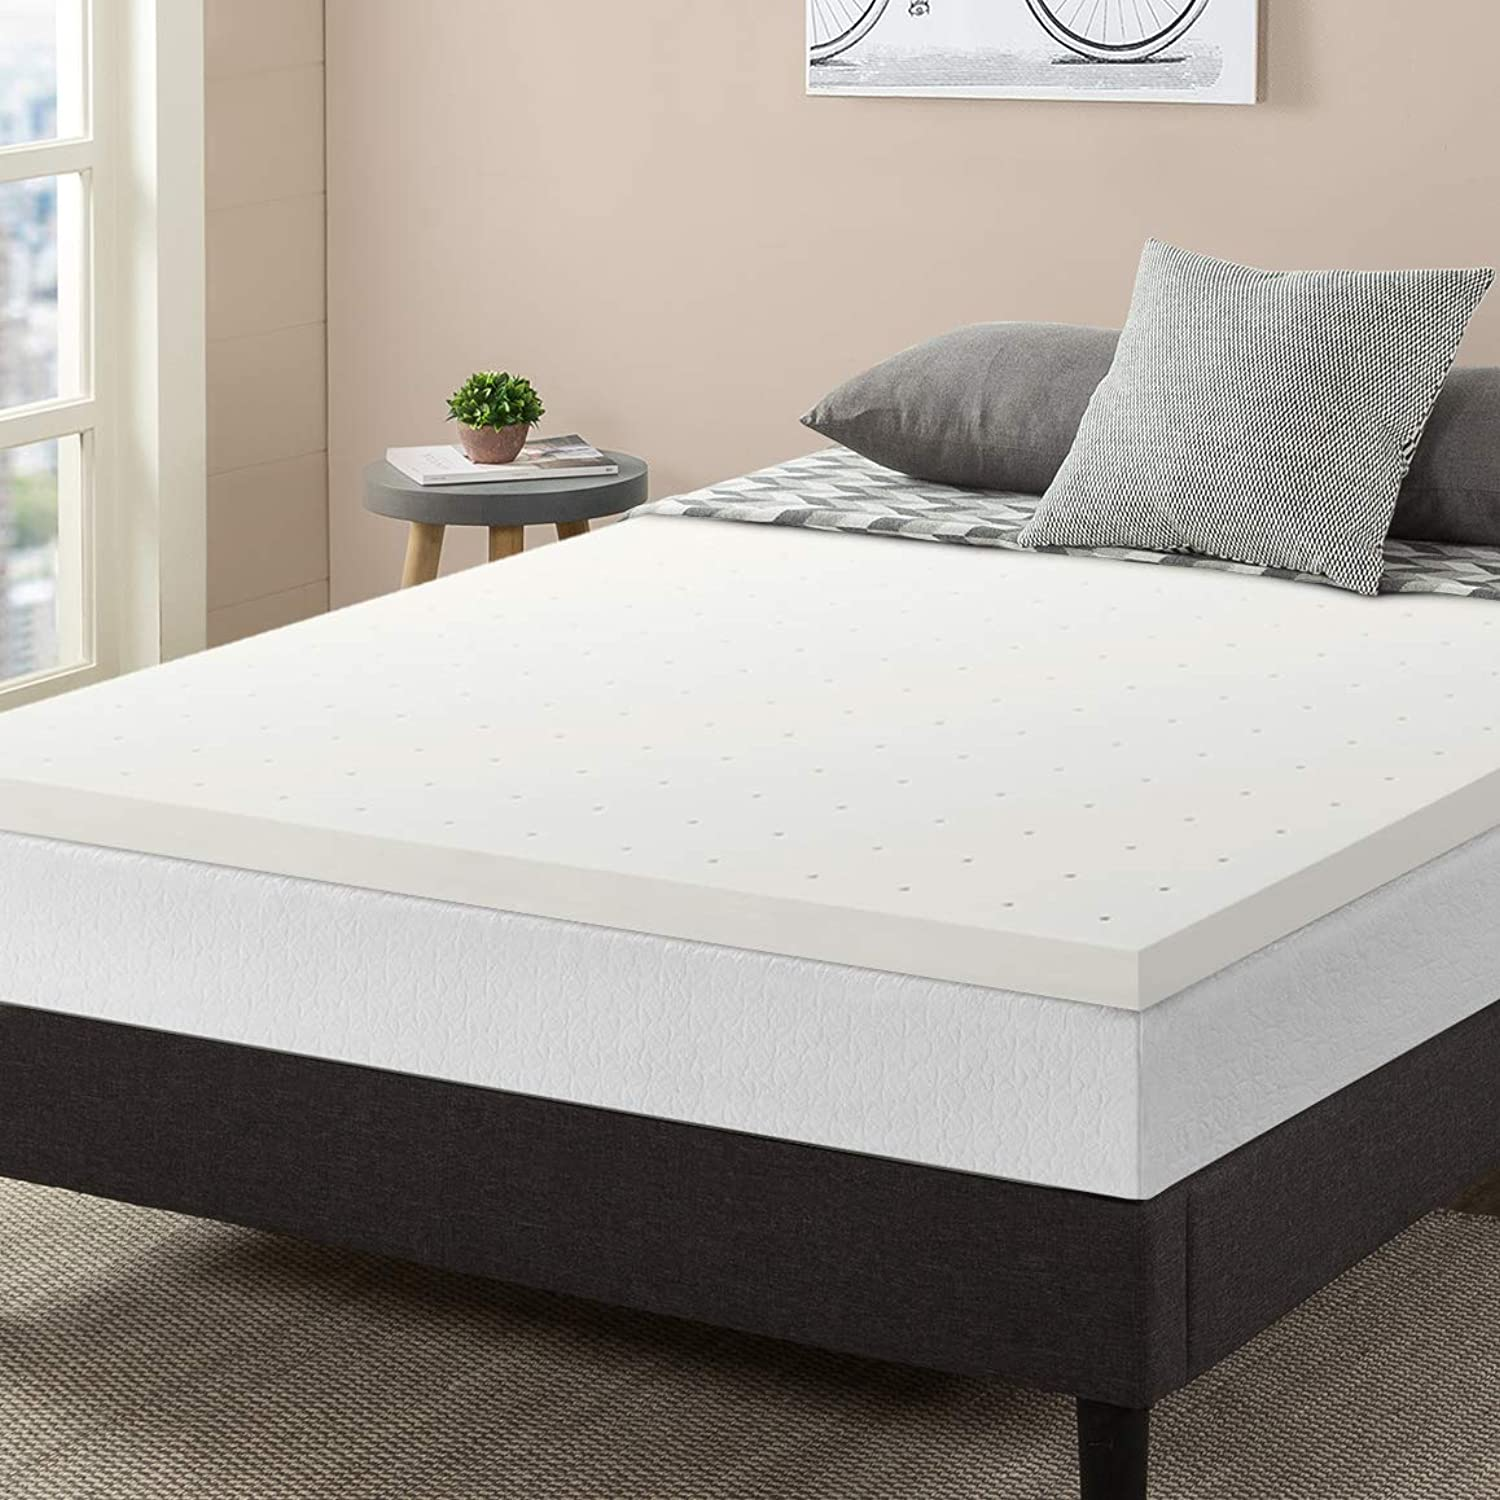 Best Price Mattress 2  Ventilated Memory Foam Mattress Topper, Full